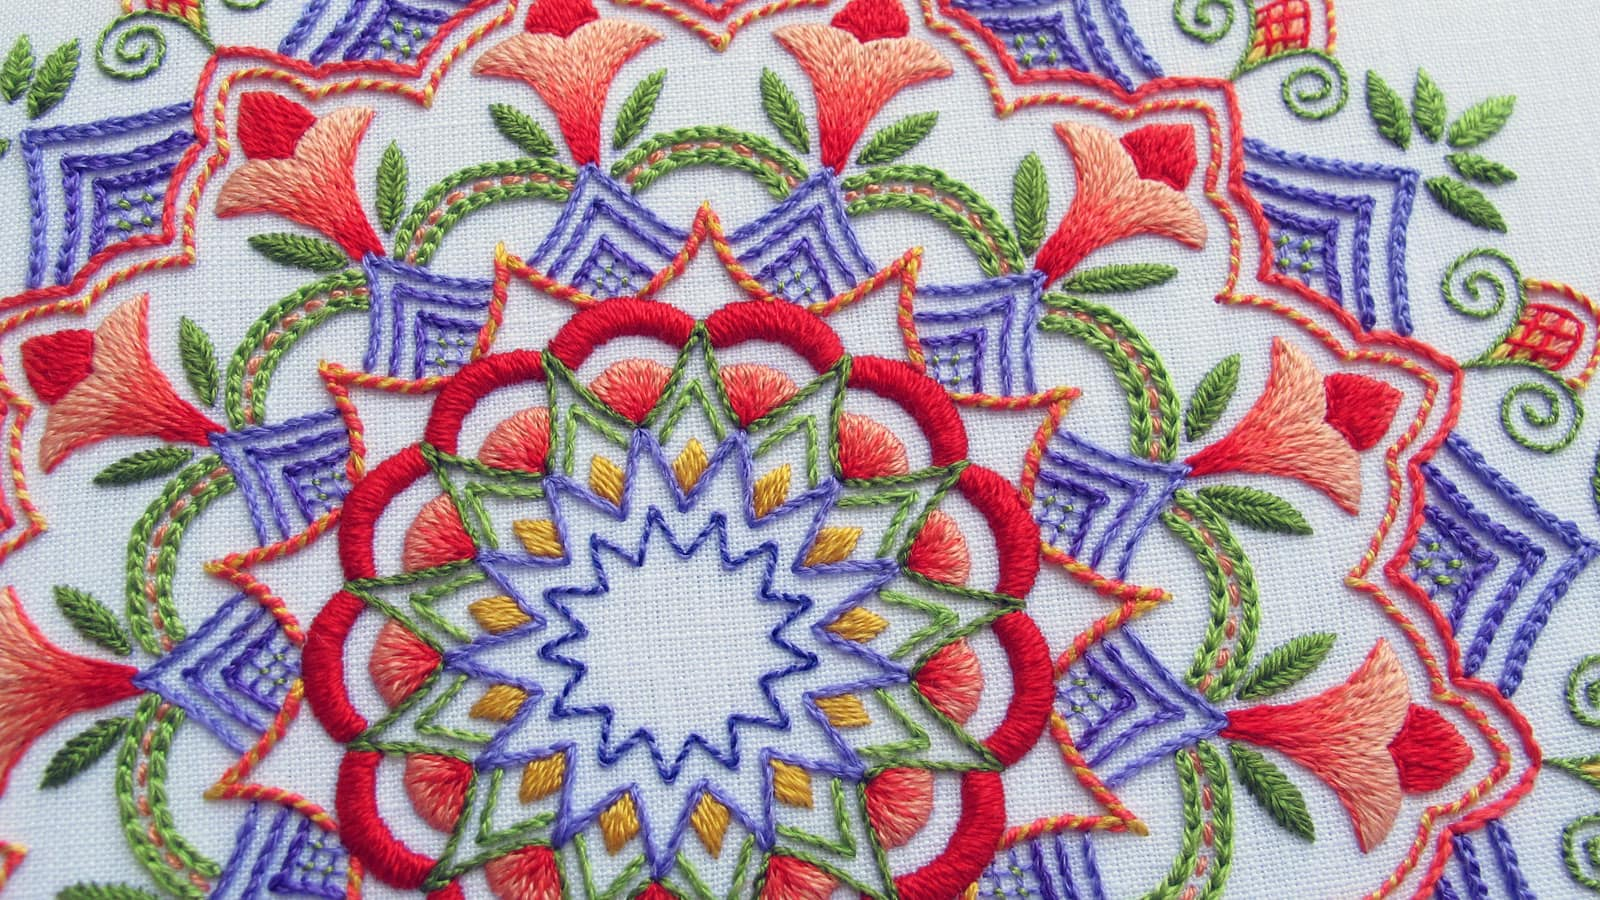 How To Read Embroidery Patterns Needlenthread Tips Tricks And Great Resources For Hand Embroidery